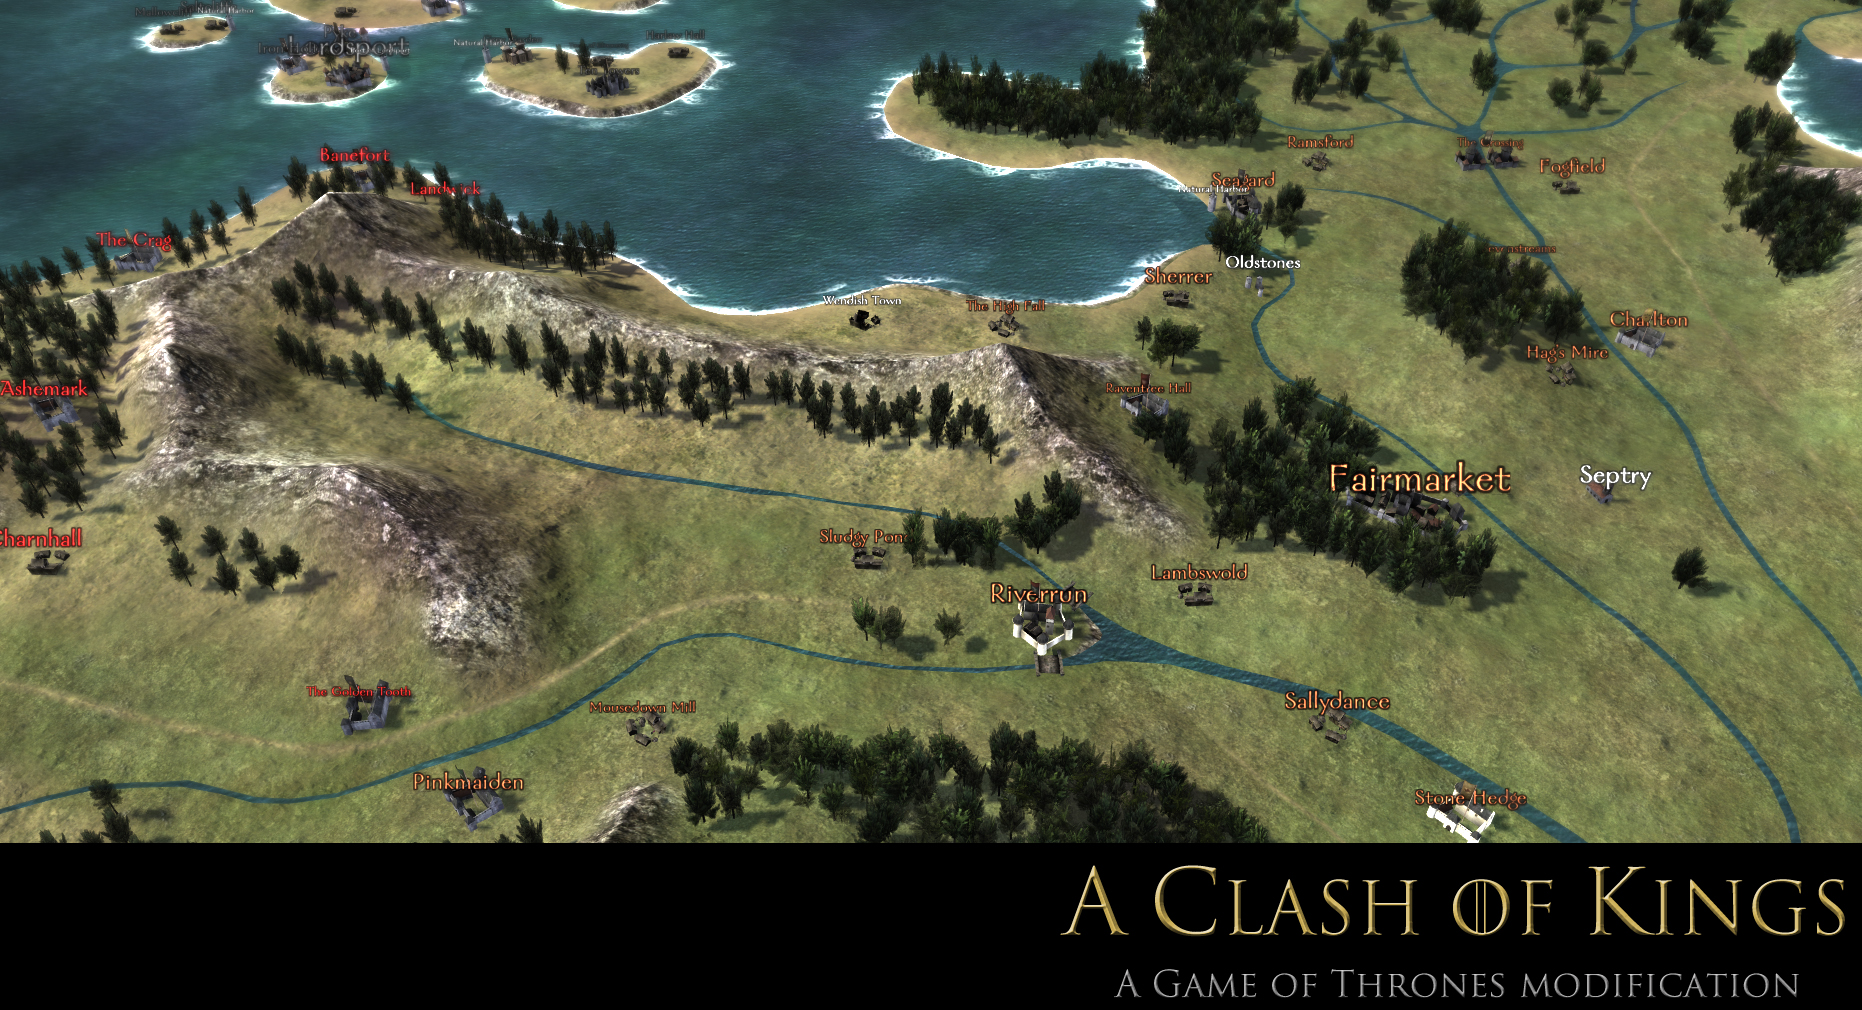 World Map Image A Clash Of Kings Game Of Thrones Mod For Mount